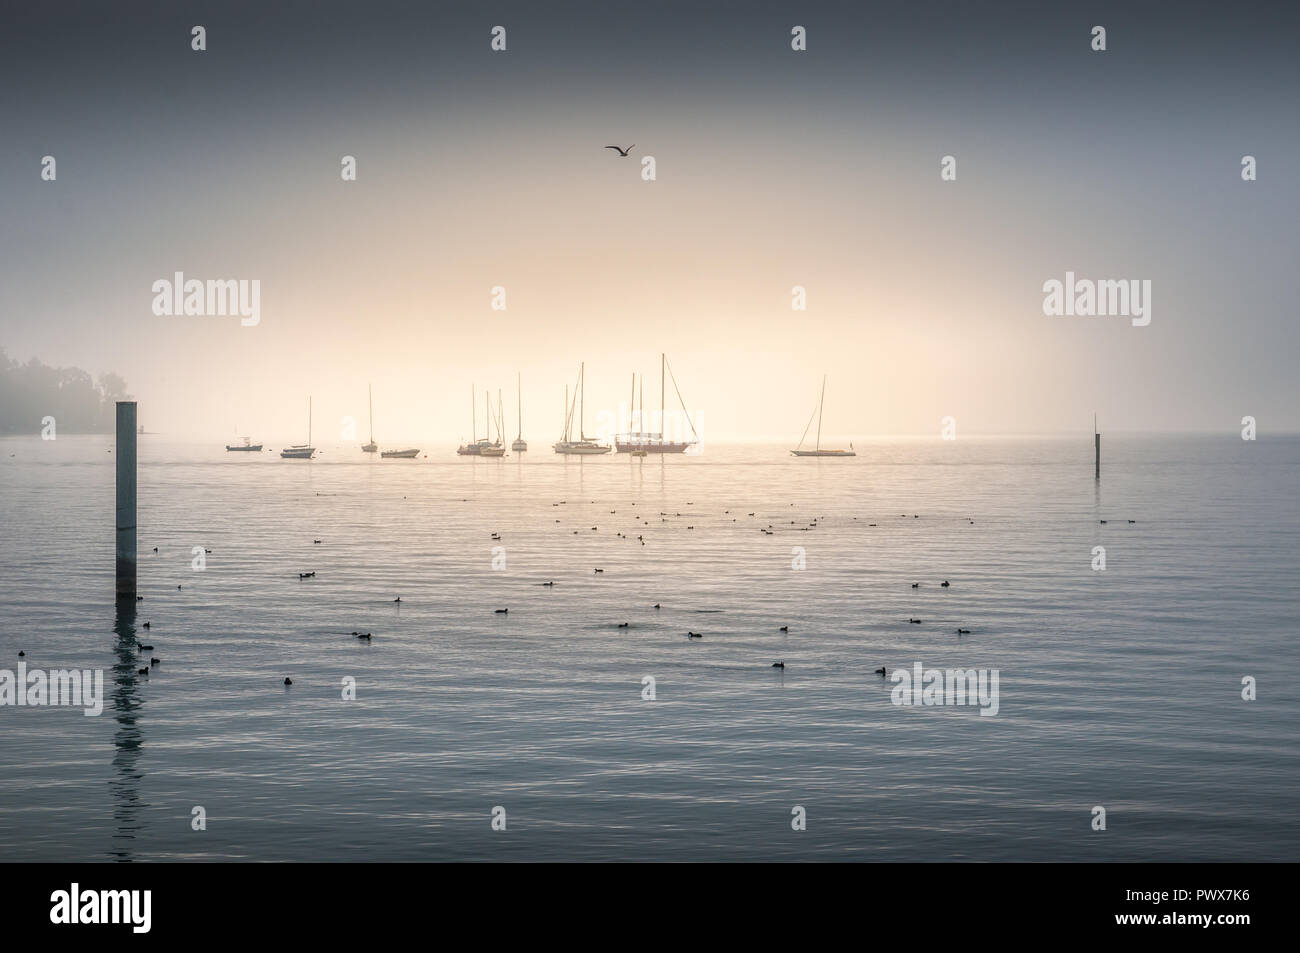 Seabirds floating on the ocean with shipping fleet on the horizon in the background in a central highlight - Stock Image